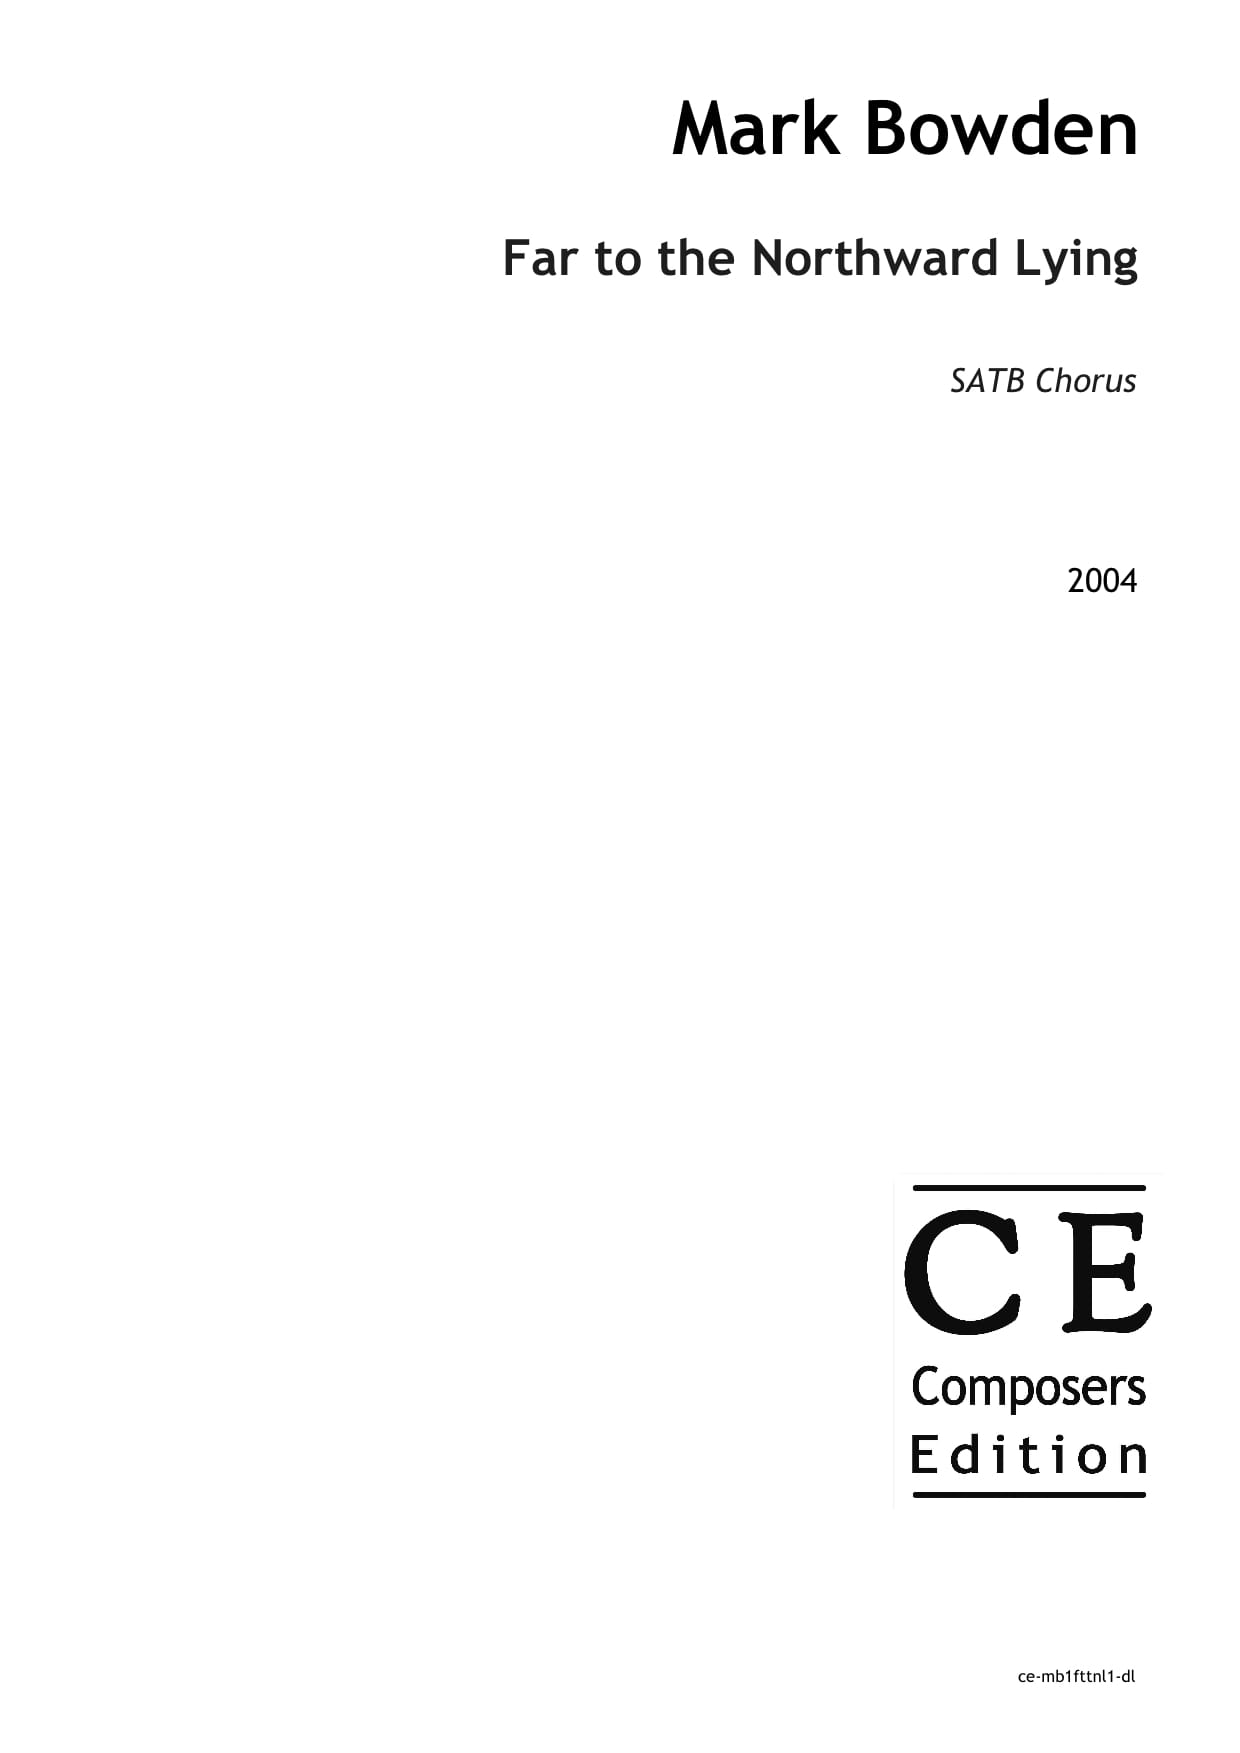 Mark Bowden: Far to the Northward Lying for SATB chorus